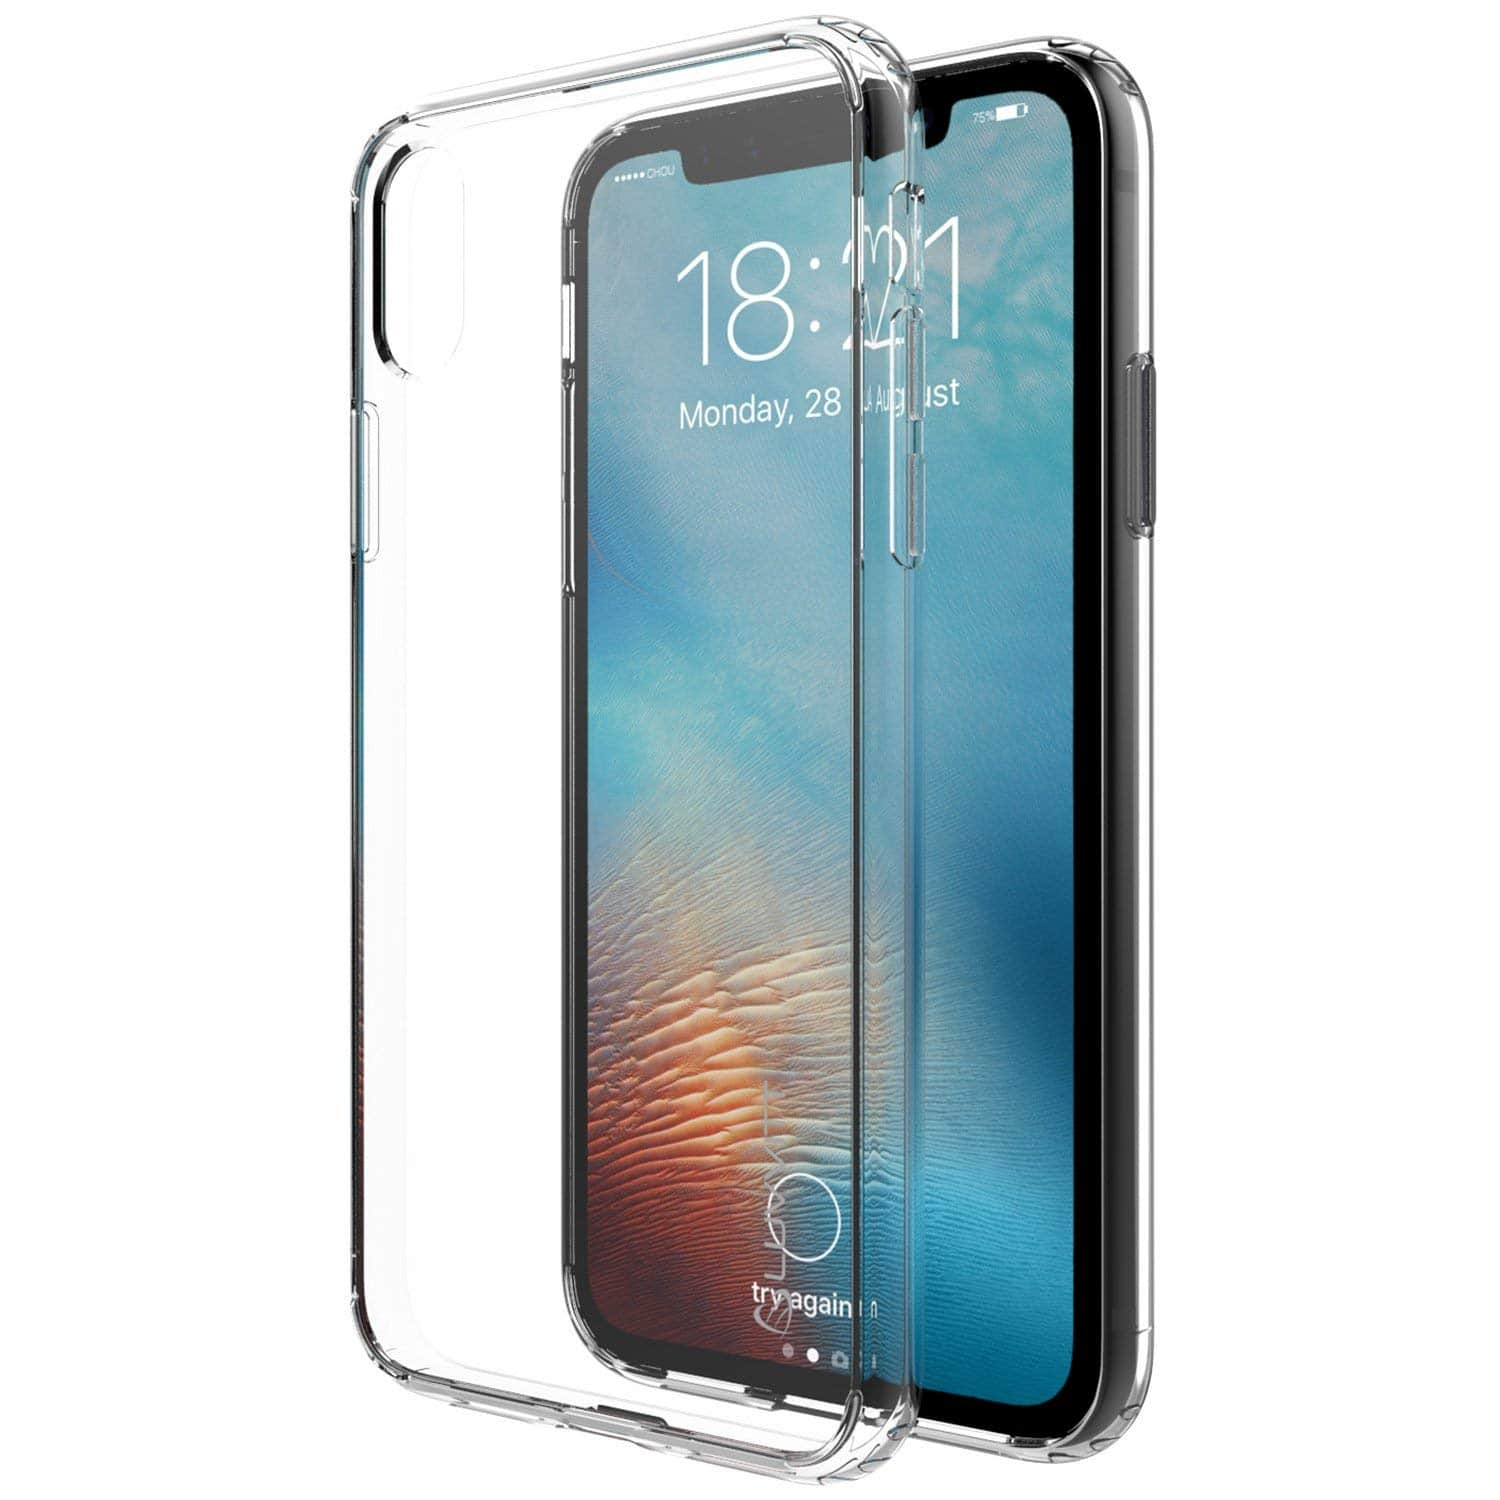 timeless design a62e6 1dec0 Luvvitt Cases for iPhone X/8/8+, Galaxy Note 8/S8/S8+ from $4.40 ...